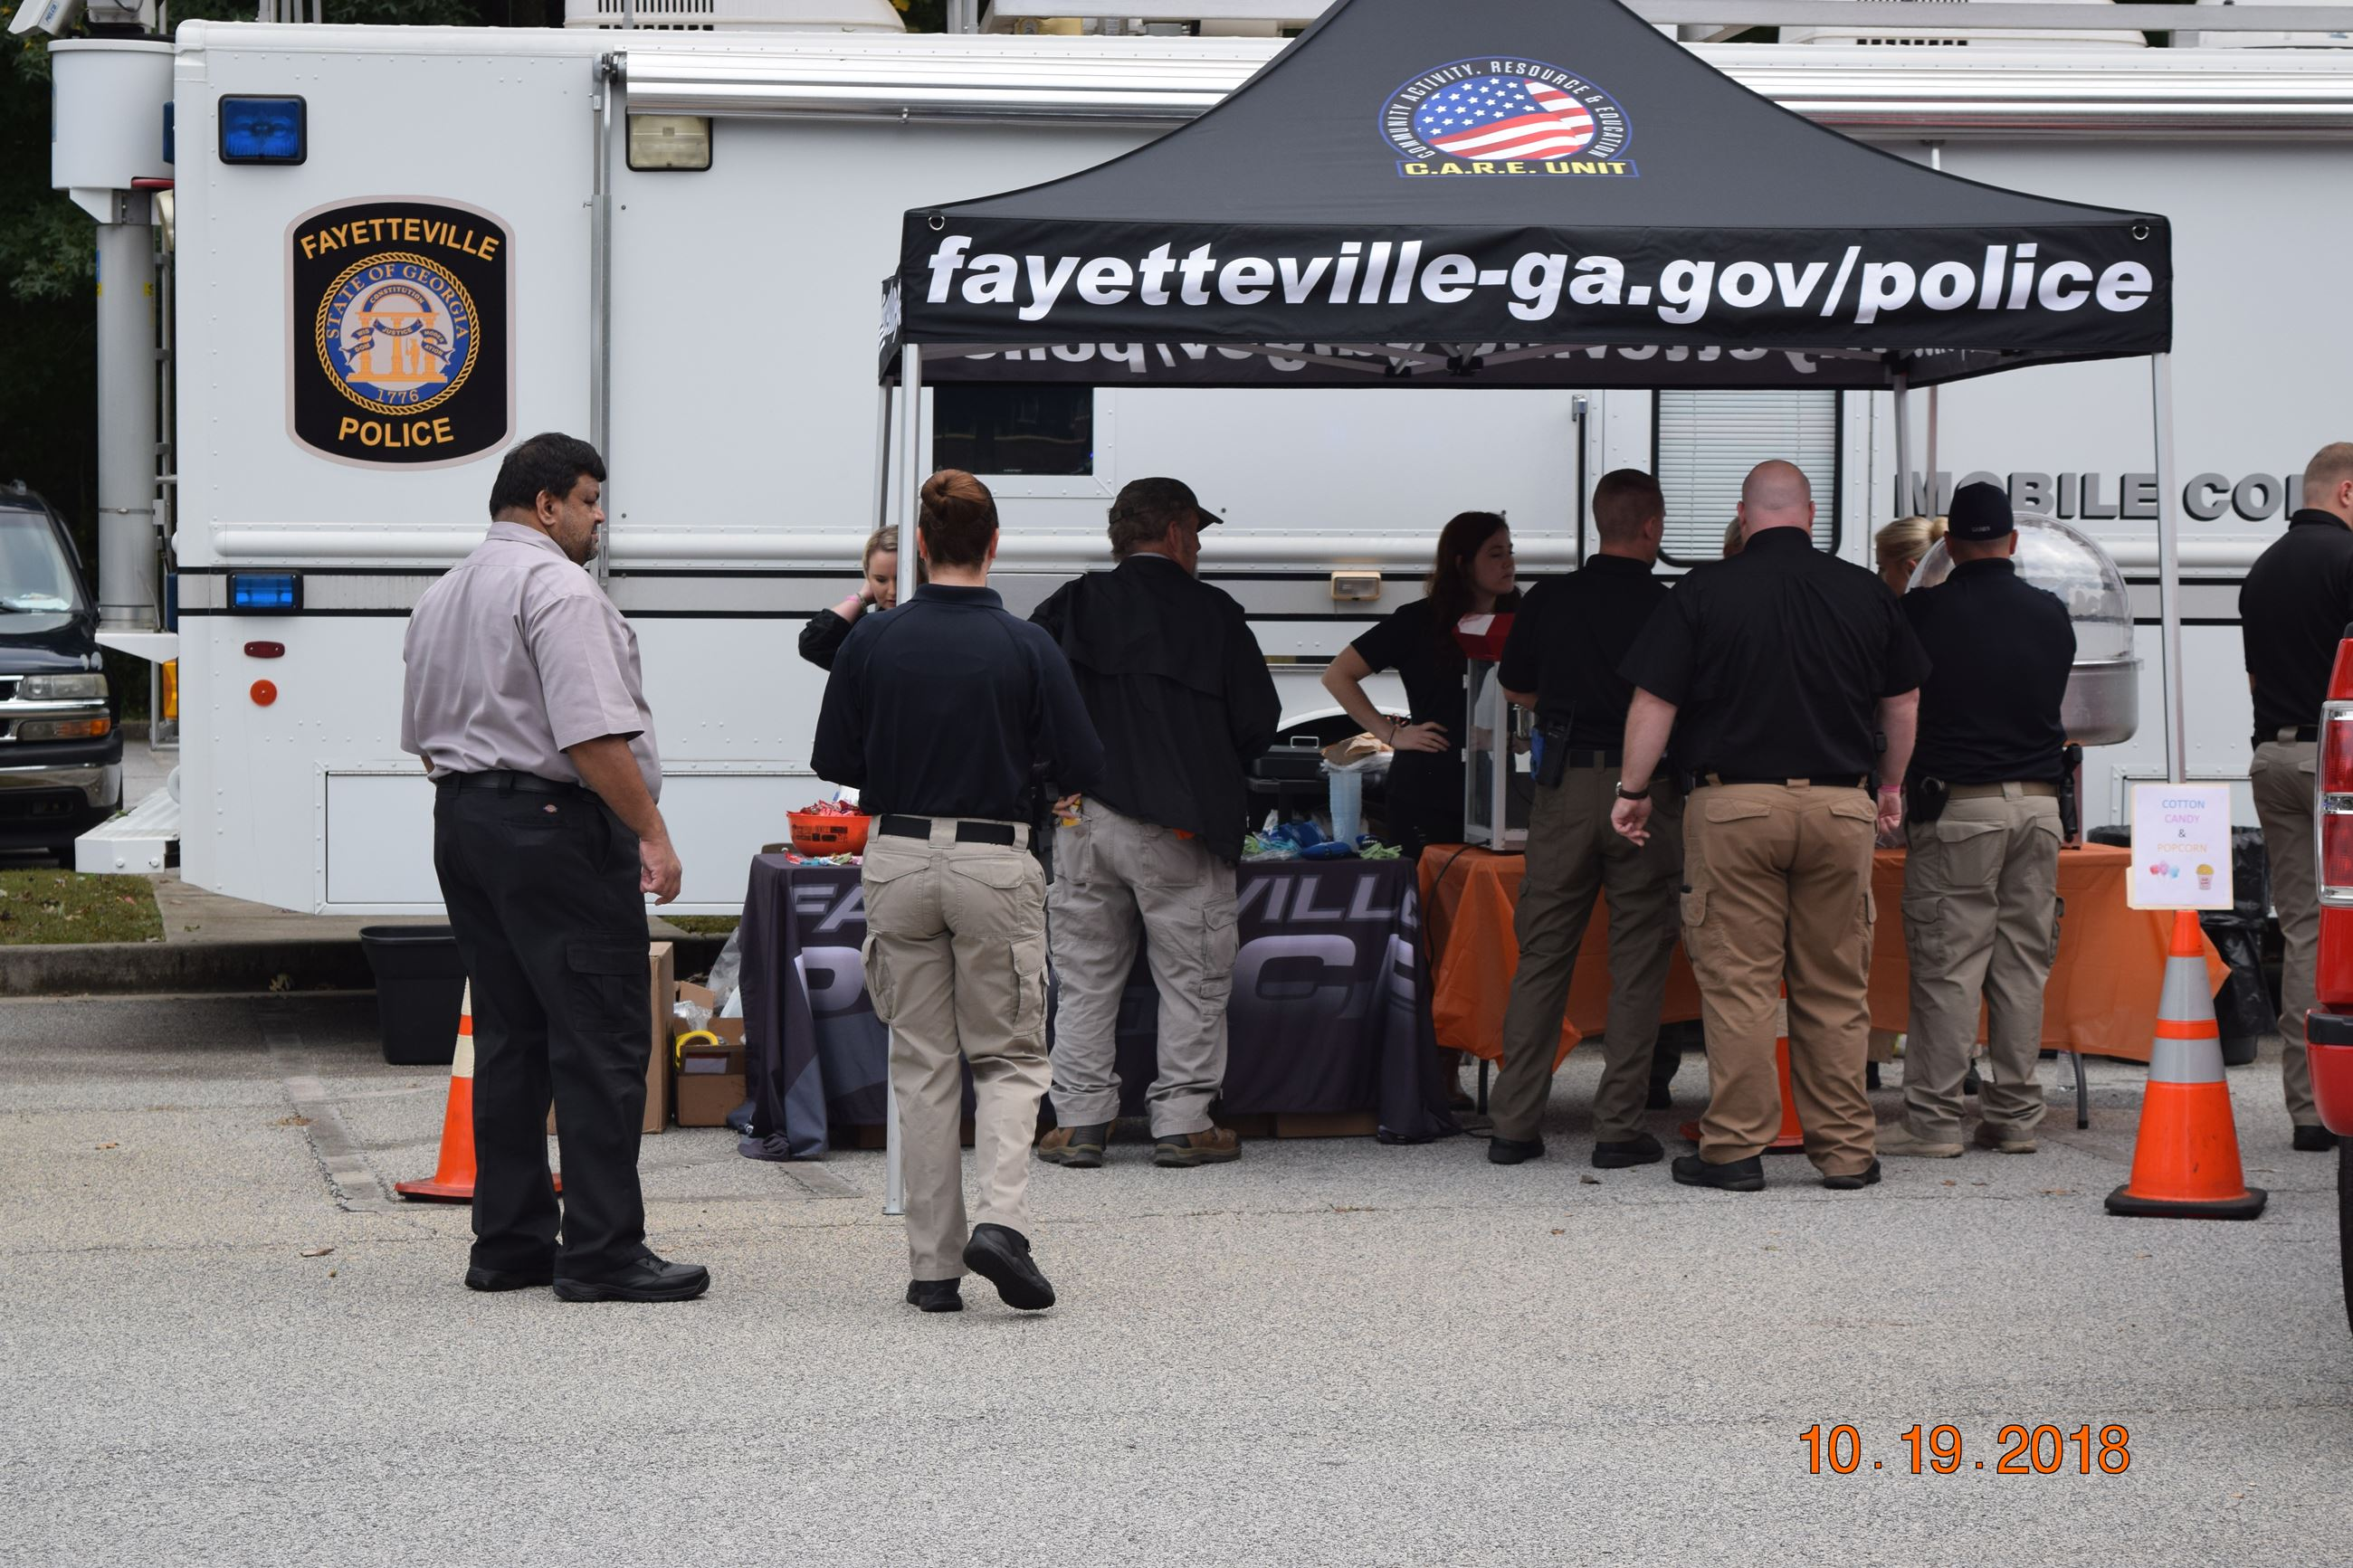 Fayetteville Police Department booth